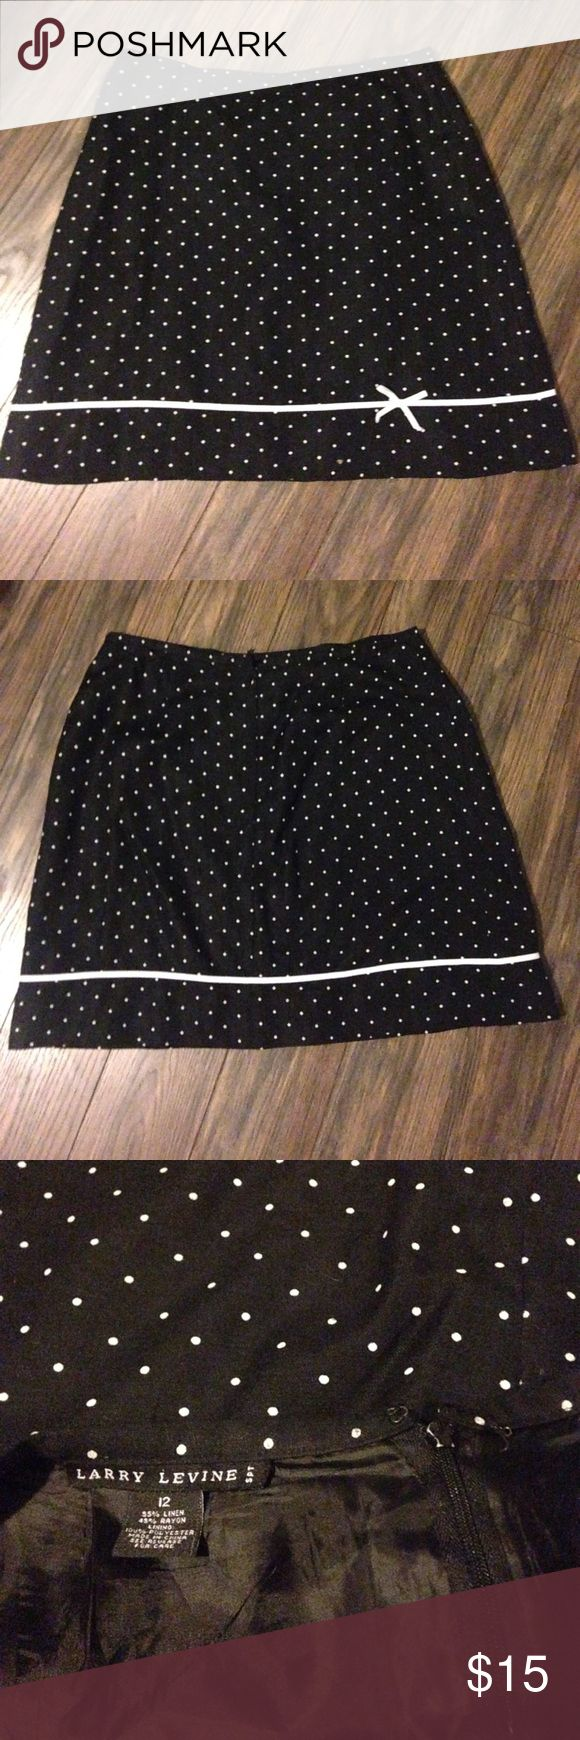 Larry Levine black and white polka dot skirt w/bow 19 inches in length,zip up back, fully lined in black. The little hook at the top of the zipper came off but other than that great condition. I love this skirt, it just doesn't fit anymore Larry Levine Skirts Mini